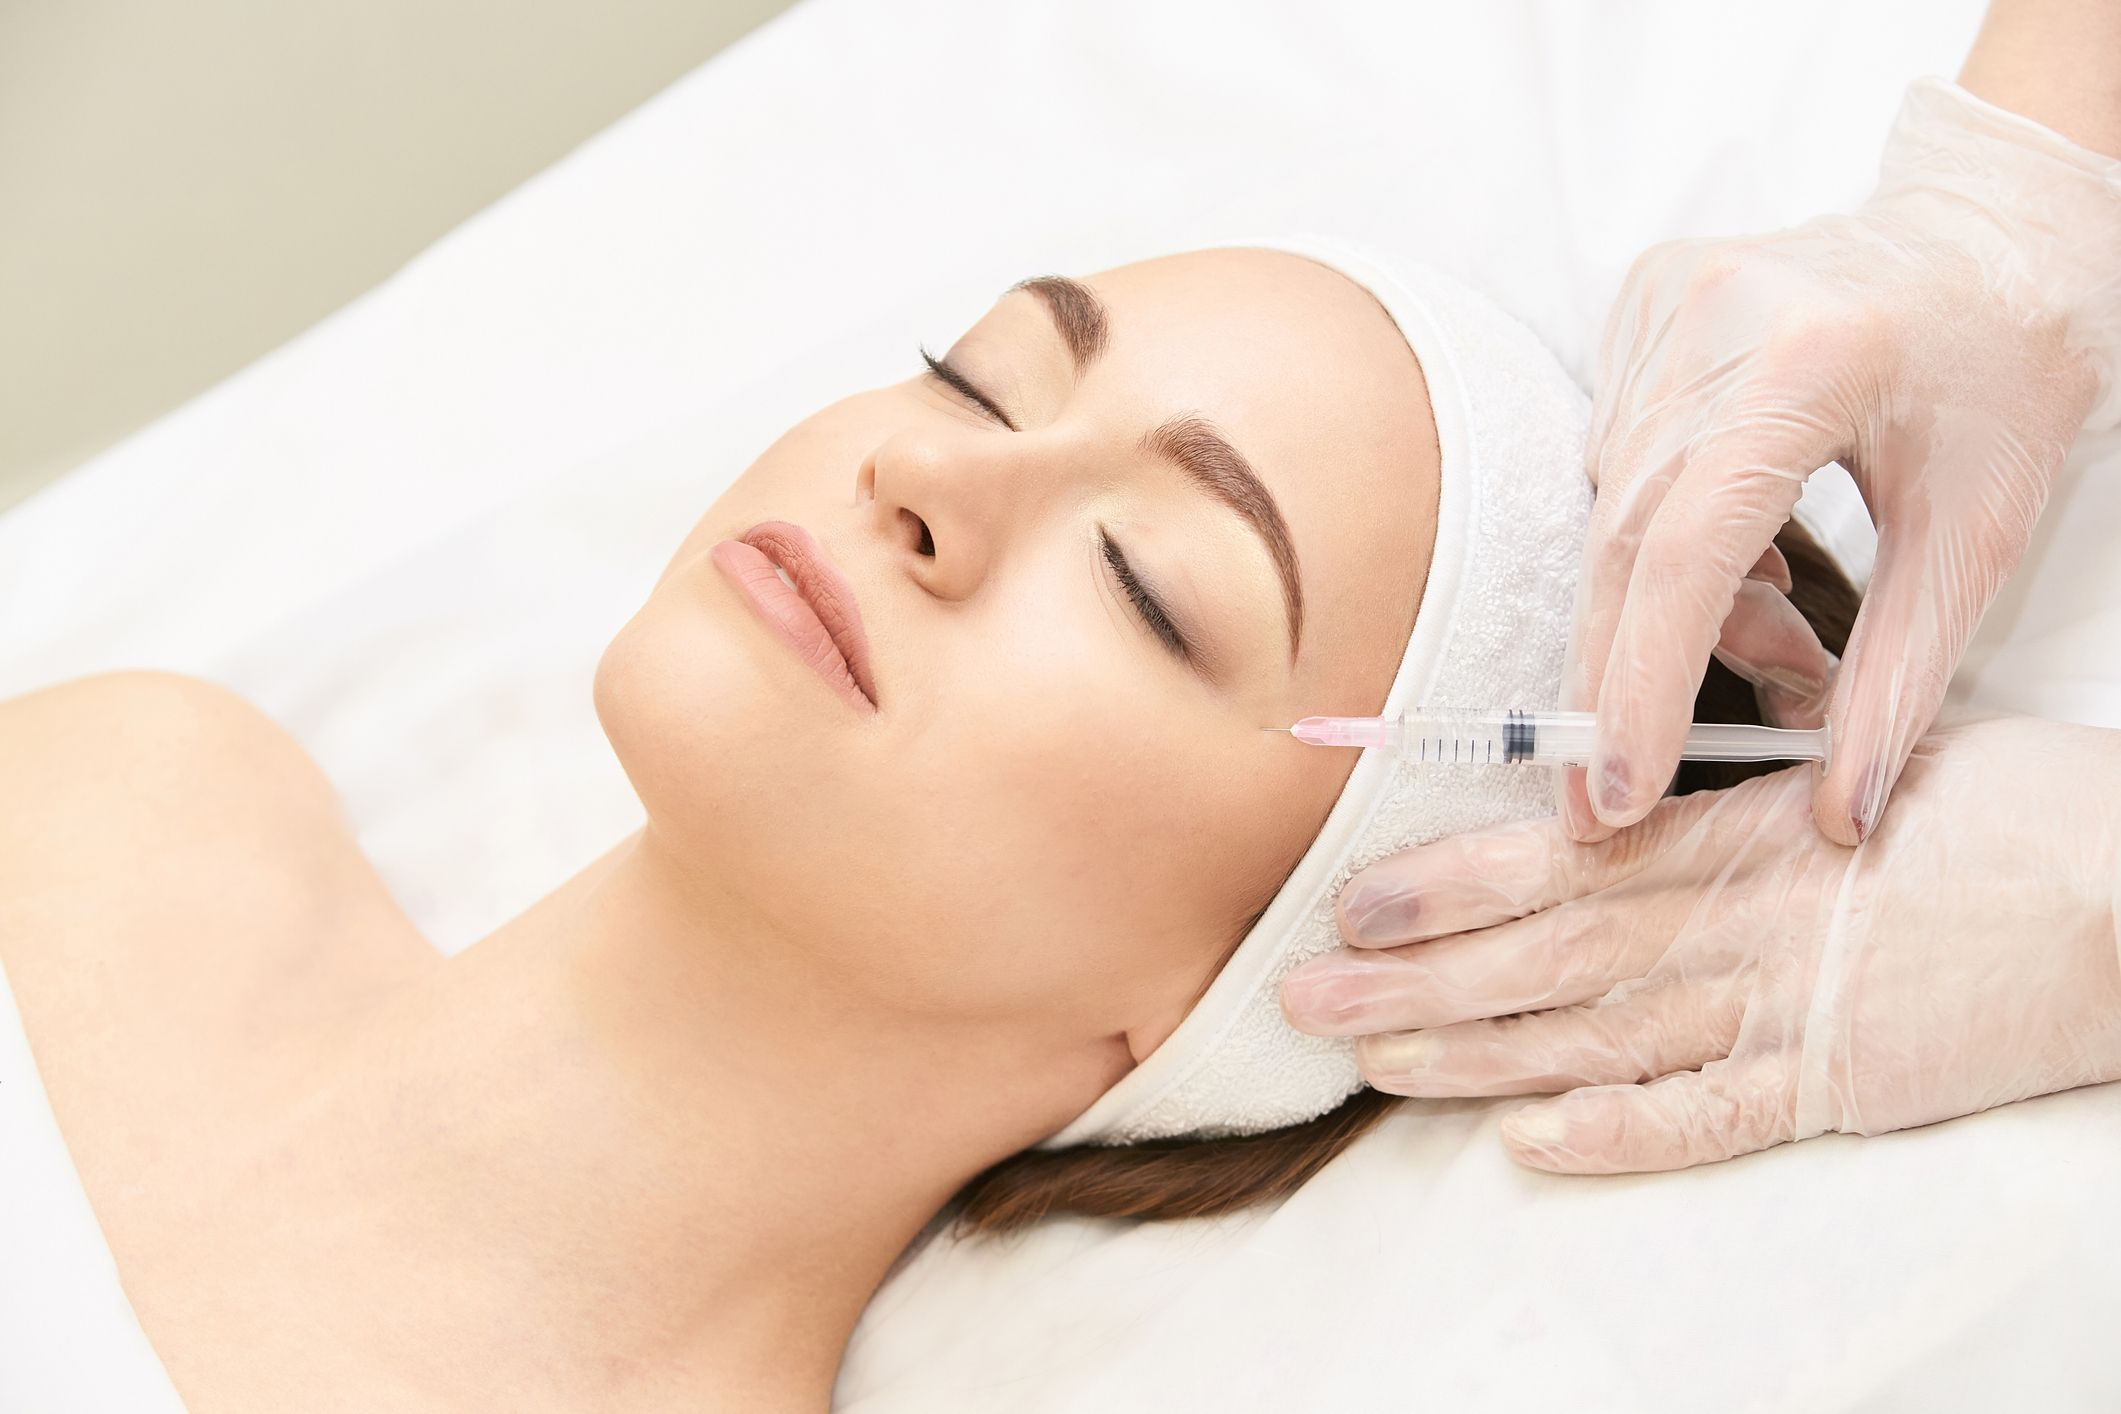 Anti wrinkle surgery. Beauty young woman injection. Facial treatment